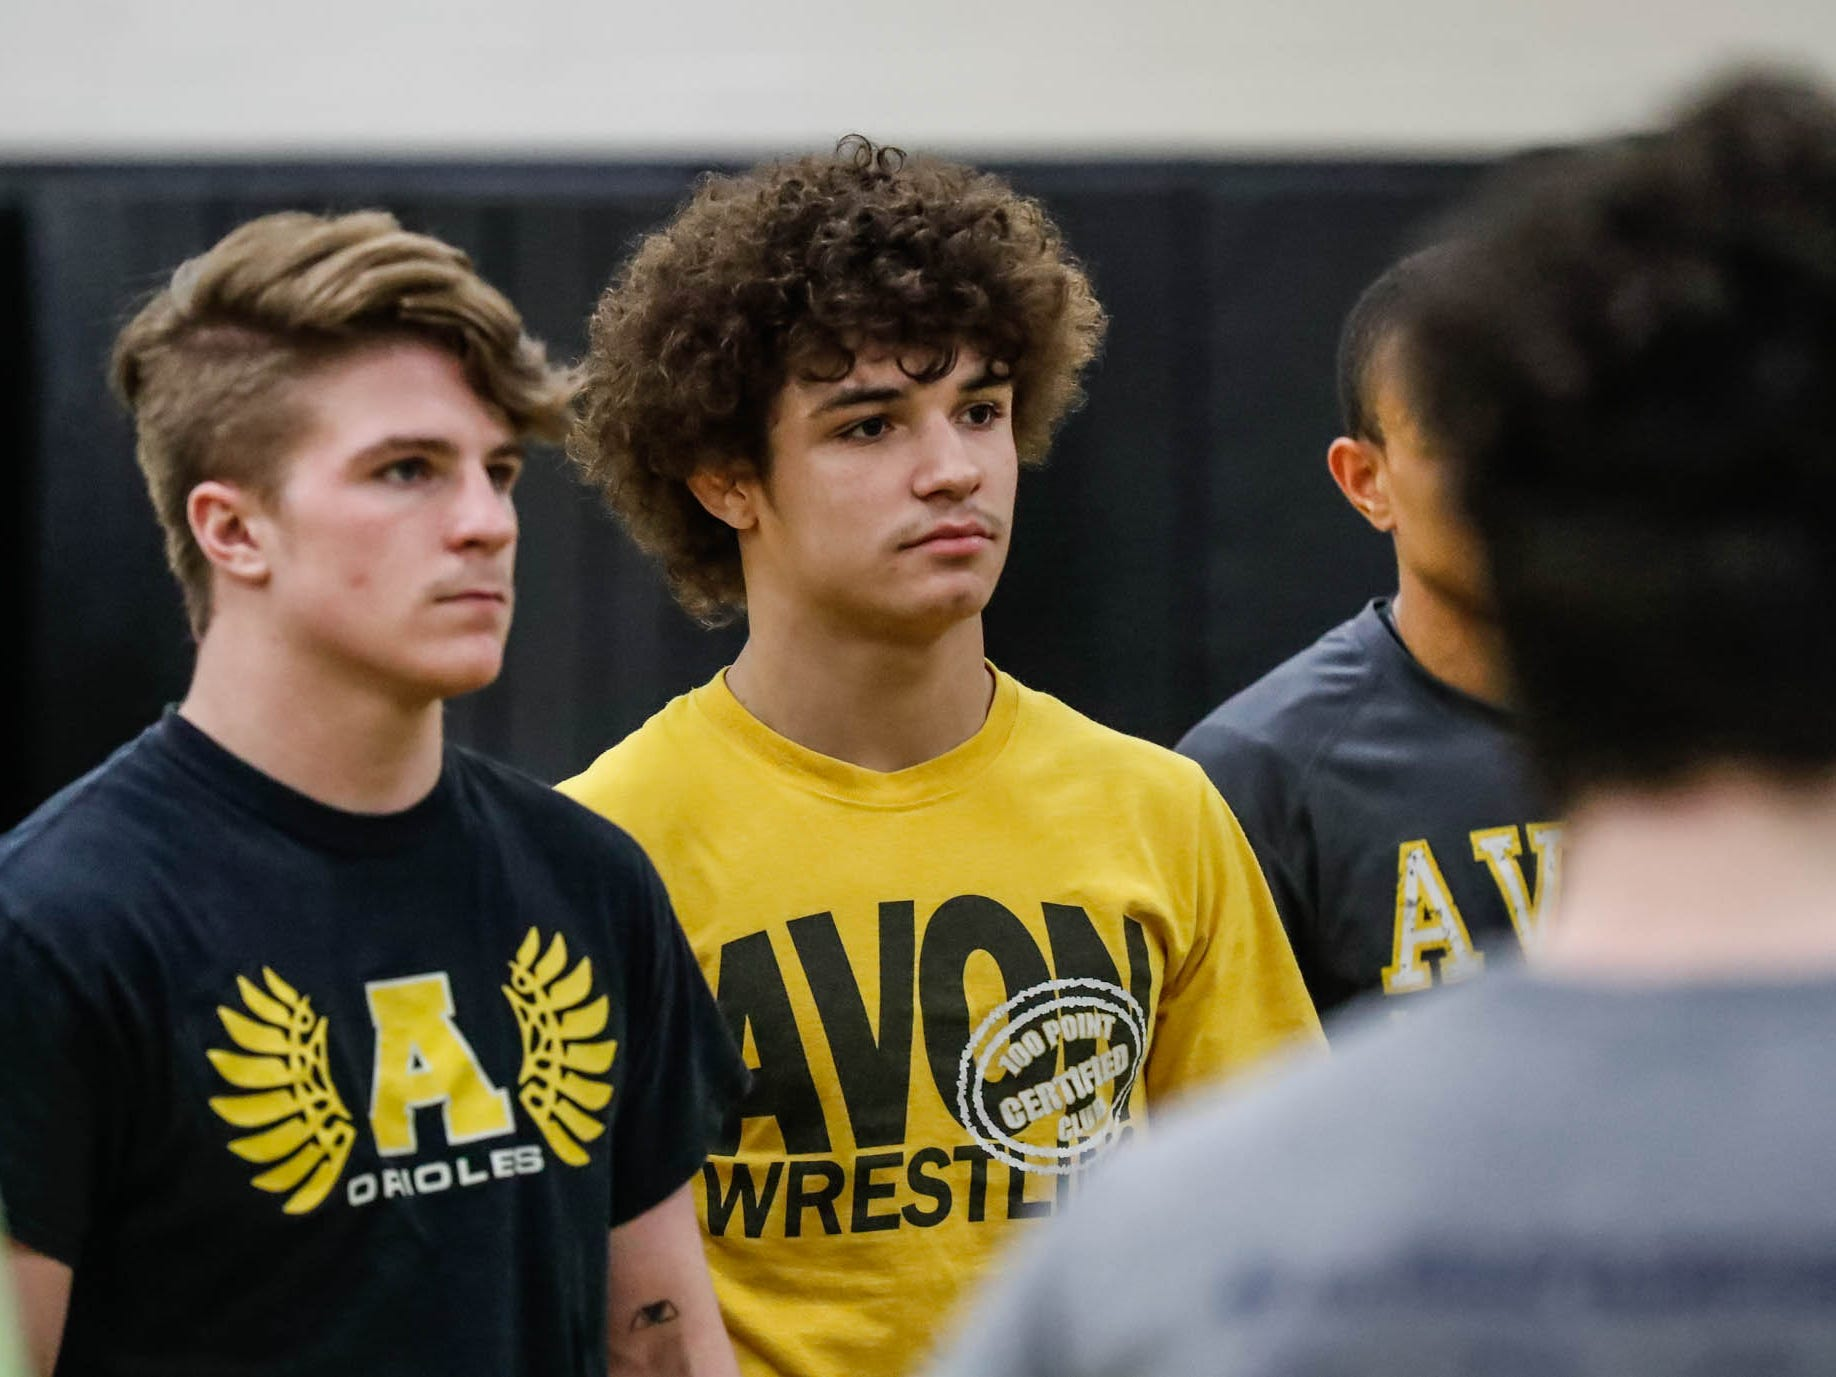 Avon wrestlers Asa Garcia, left, and Camden Chatterton, left, listen to the coach's instructions during a practice at Avon High School, on Monday, Jan. 11, 2019. Asa Garcia, an Avon H.S. senior and two-time state wrestling champ is chasing his third state title.